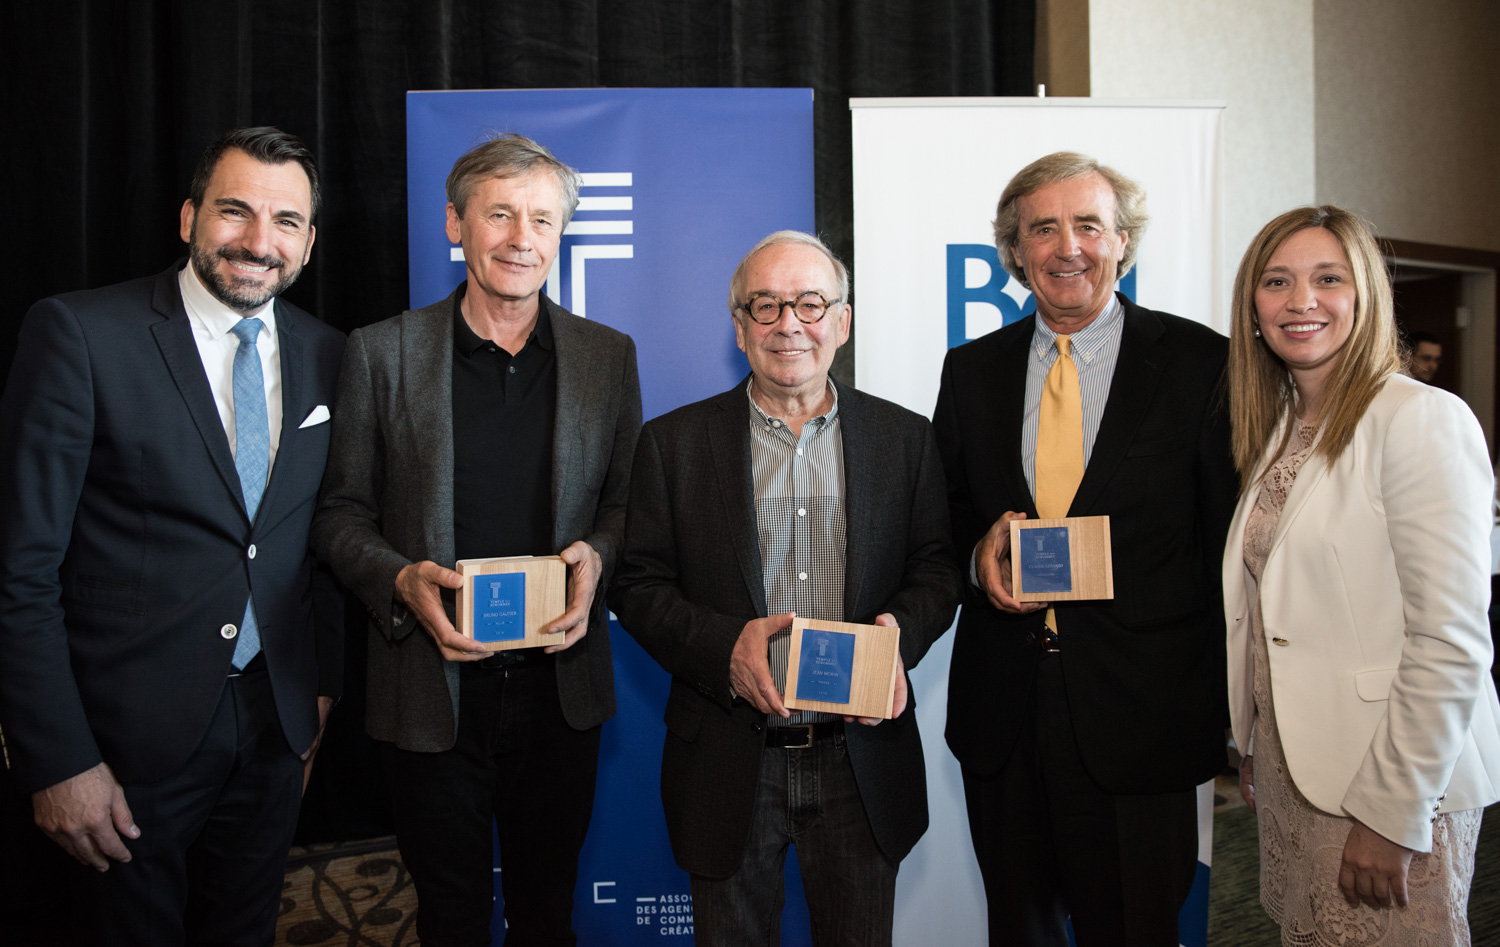 Claude Lessard, Jean Morin et Bruno Gautier inducted into the A2C Hall of Fame